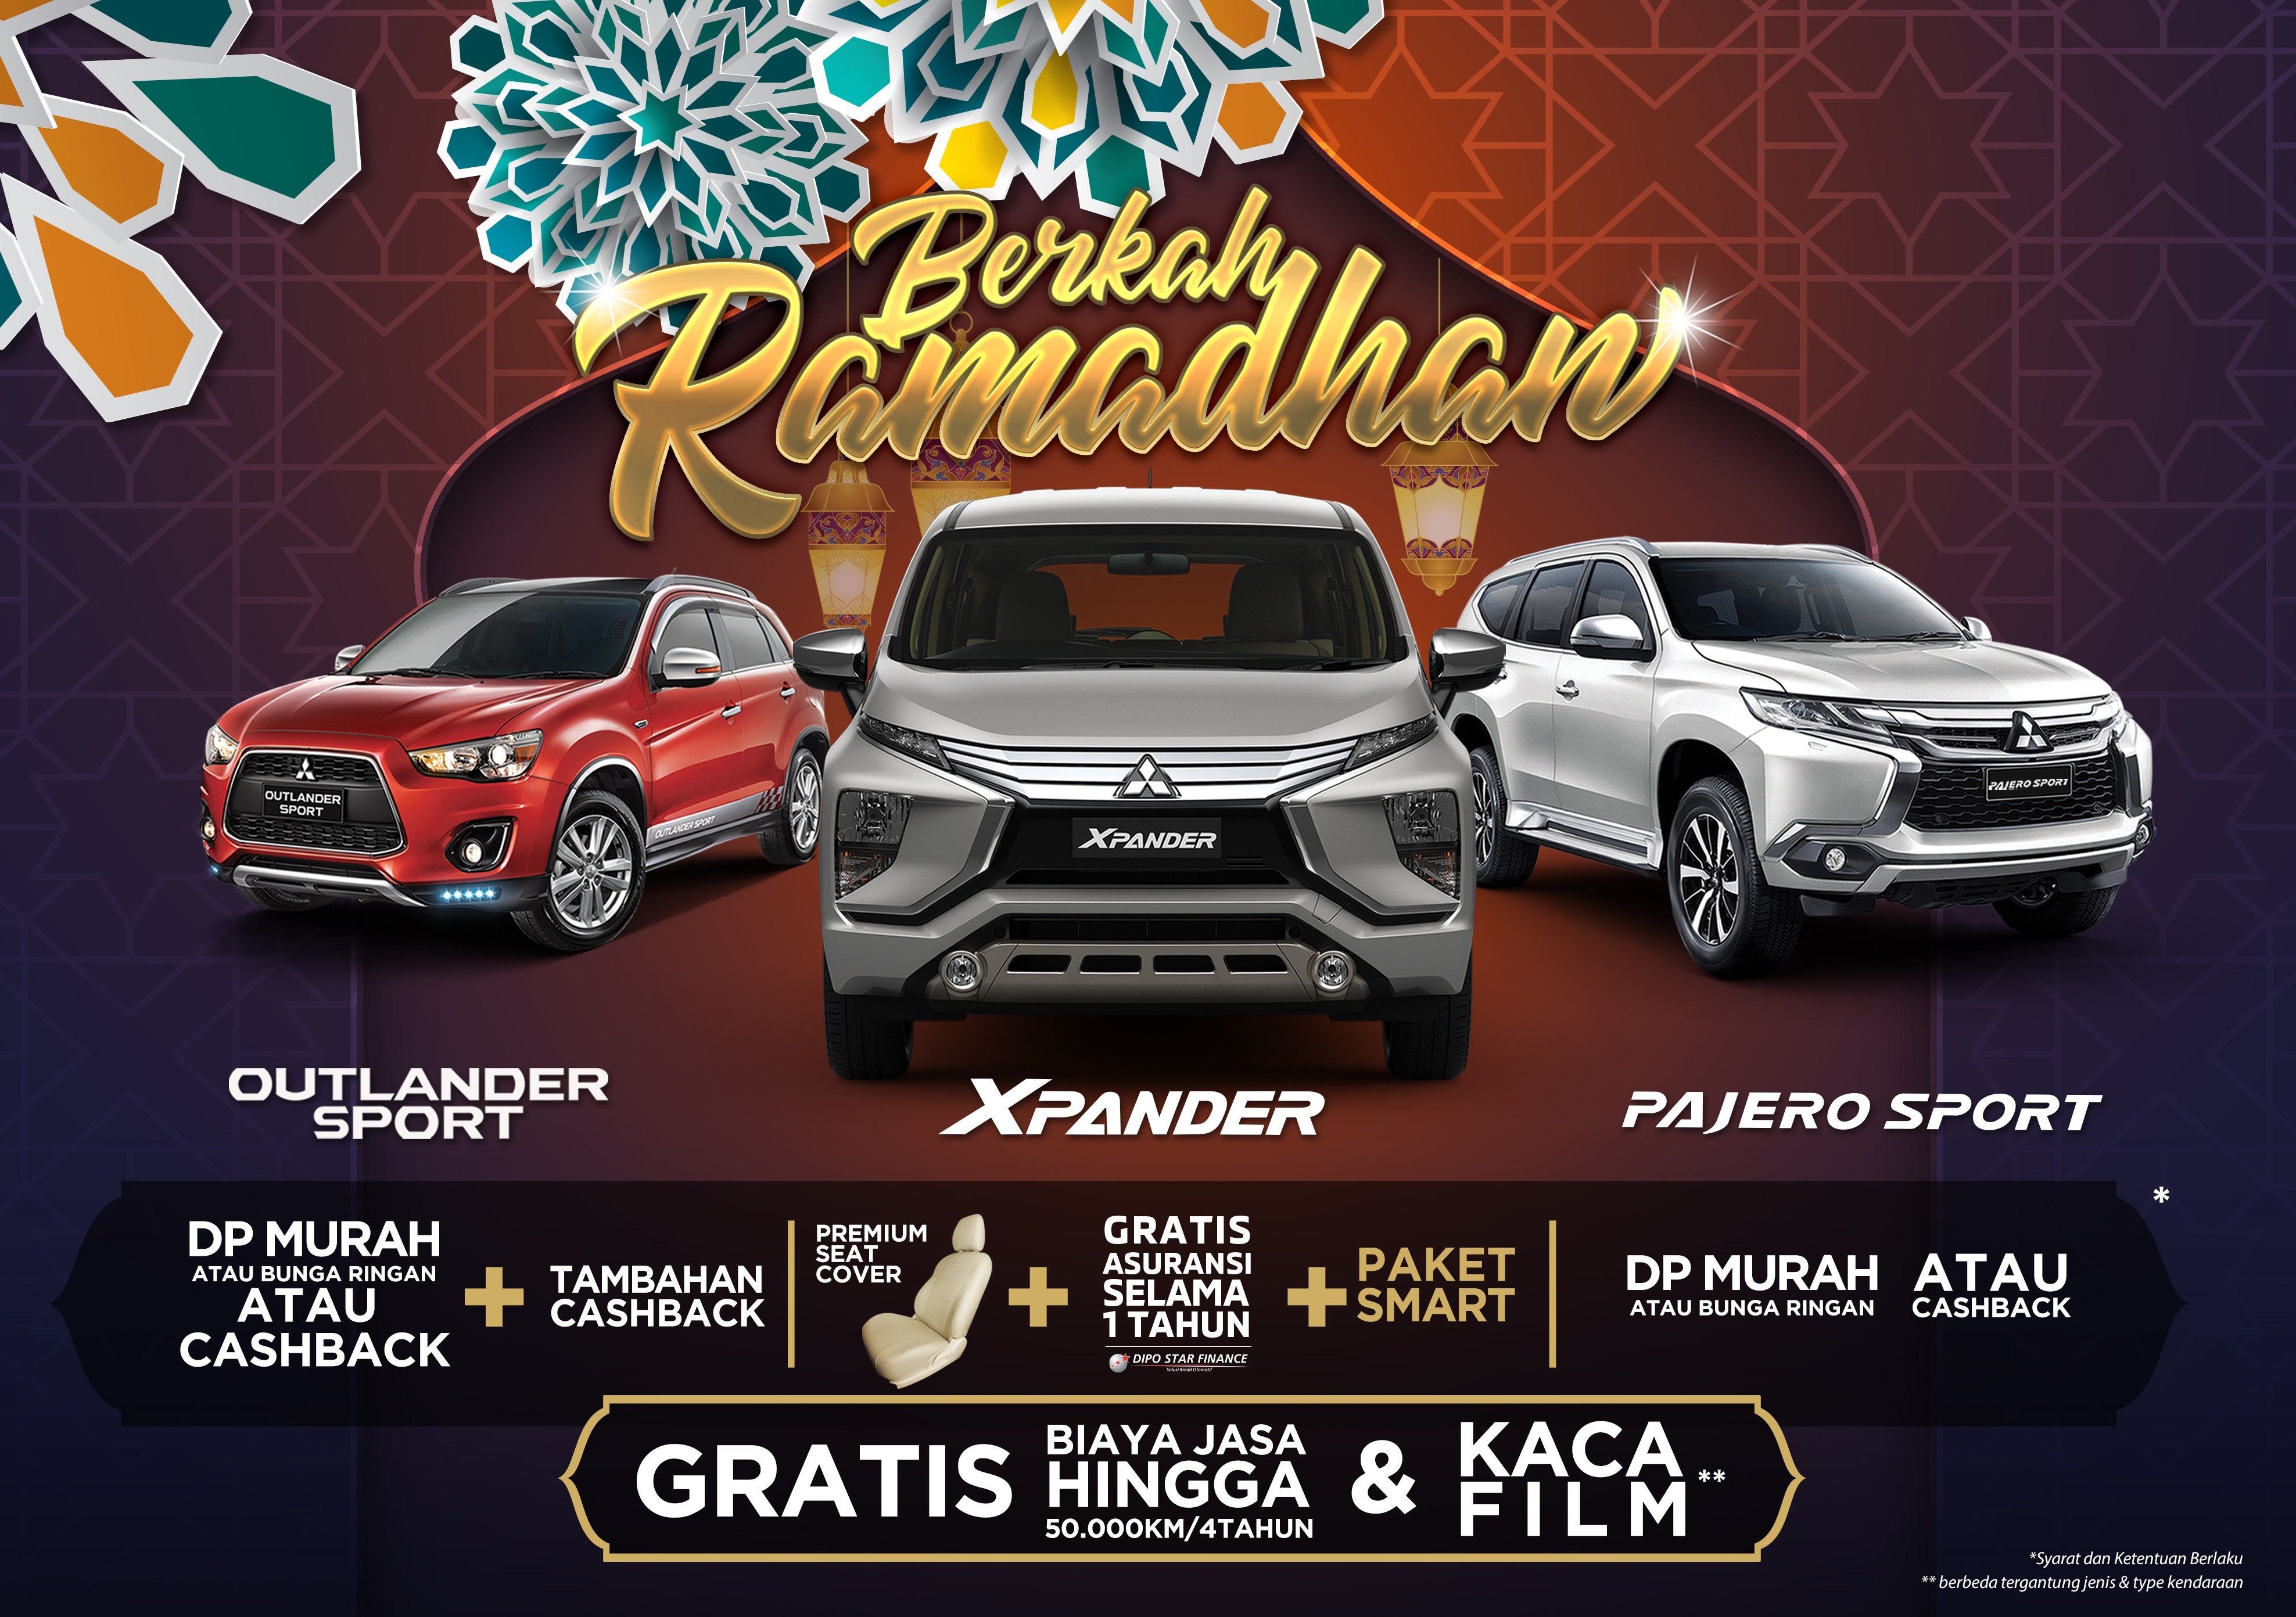 Program Penjualan Mitsubishi Motors Mei 2019